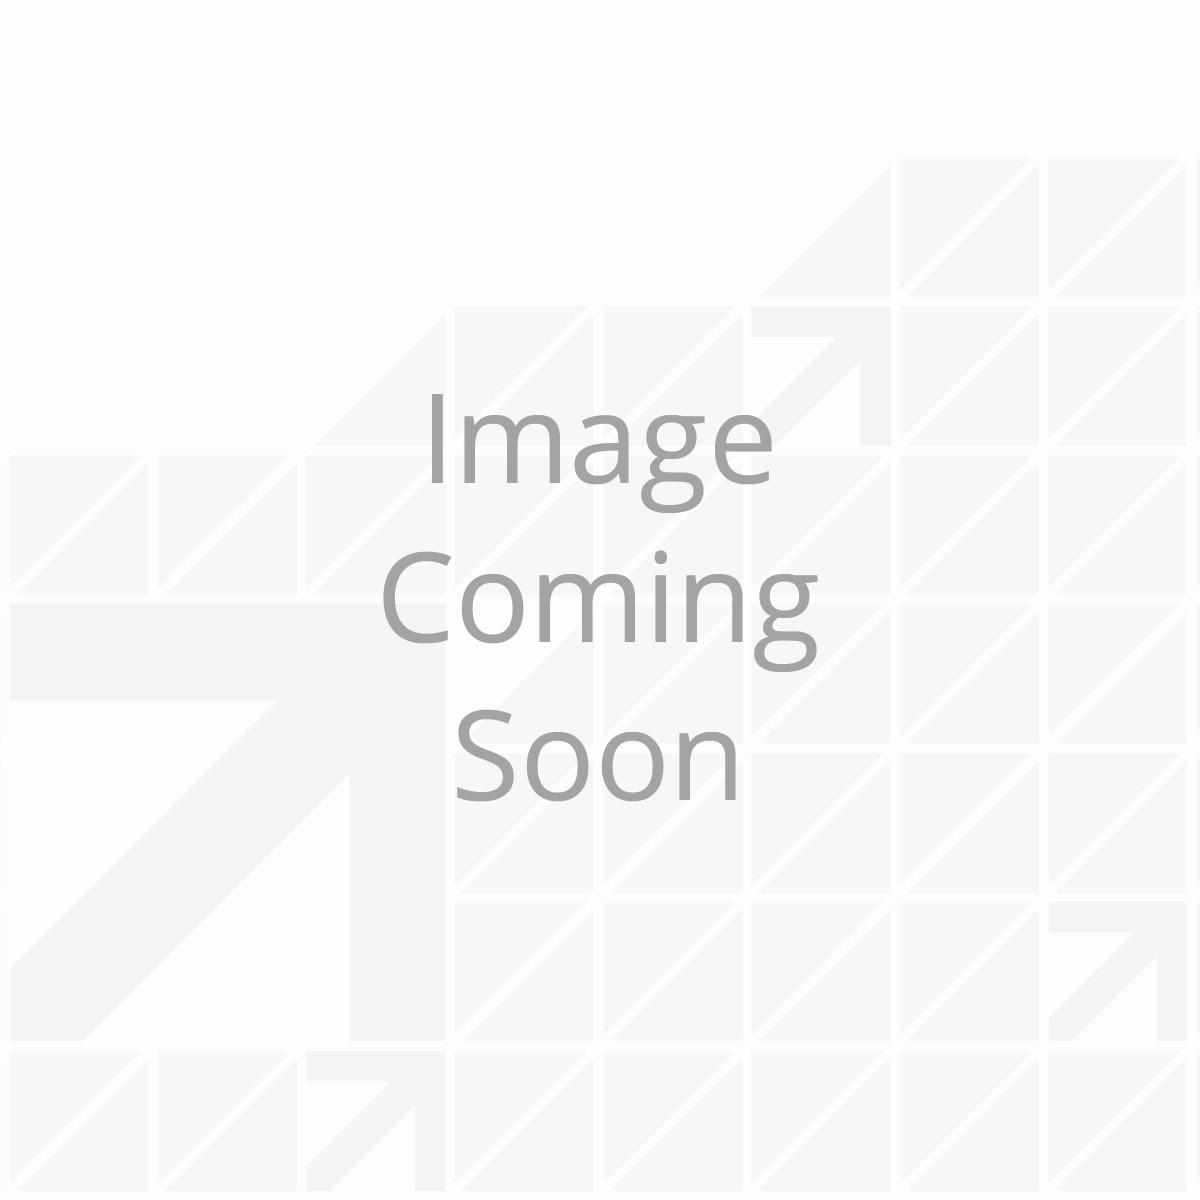 20' Transport Binder Safety Chain with 2 Clevis Hooks (26,400 lbs., Yellow Zinc)